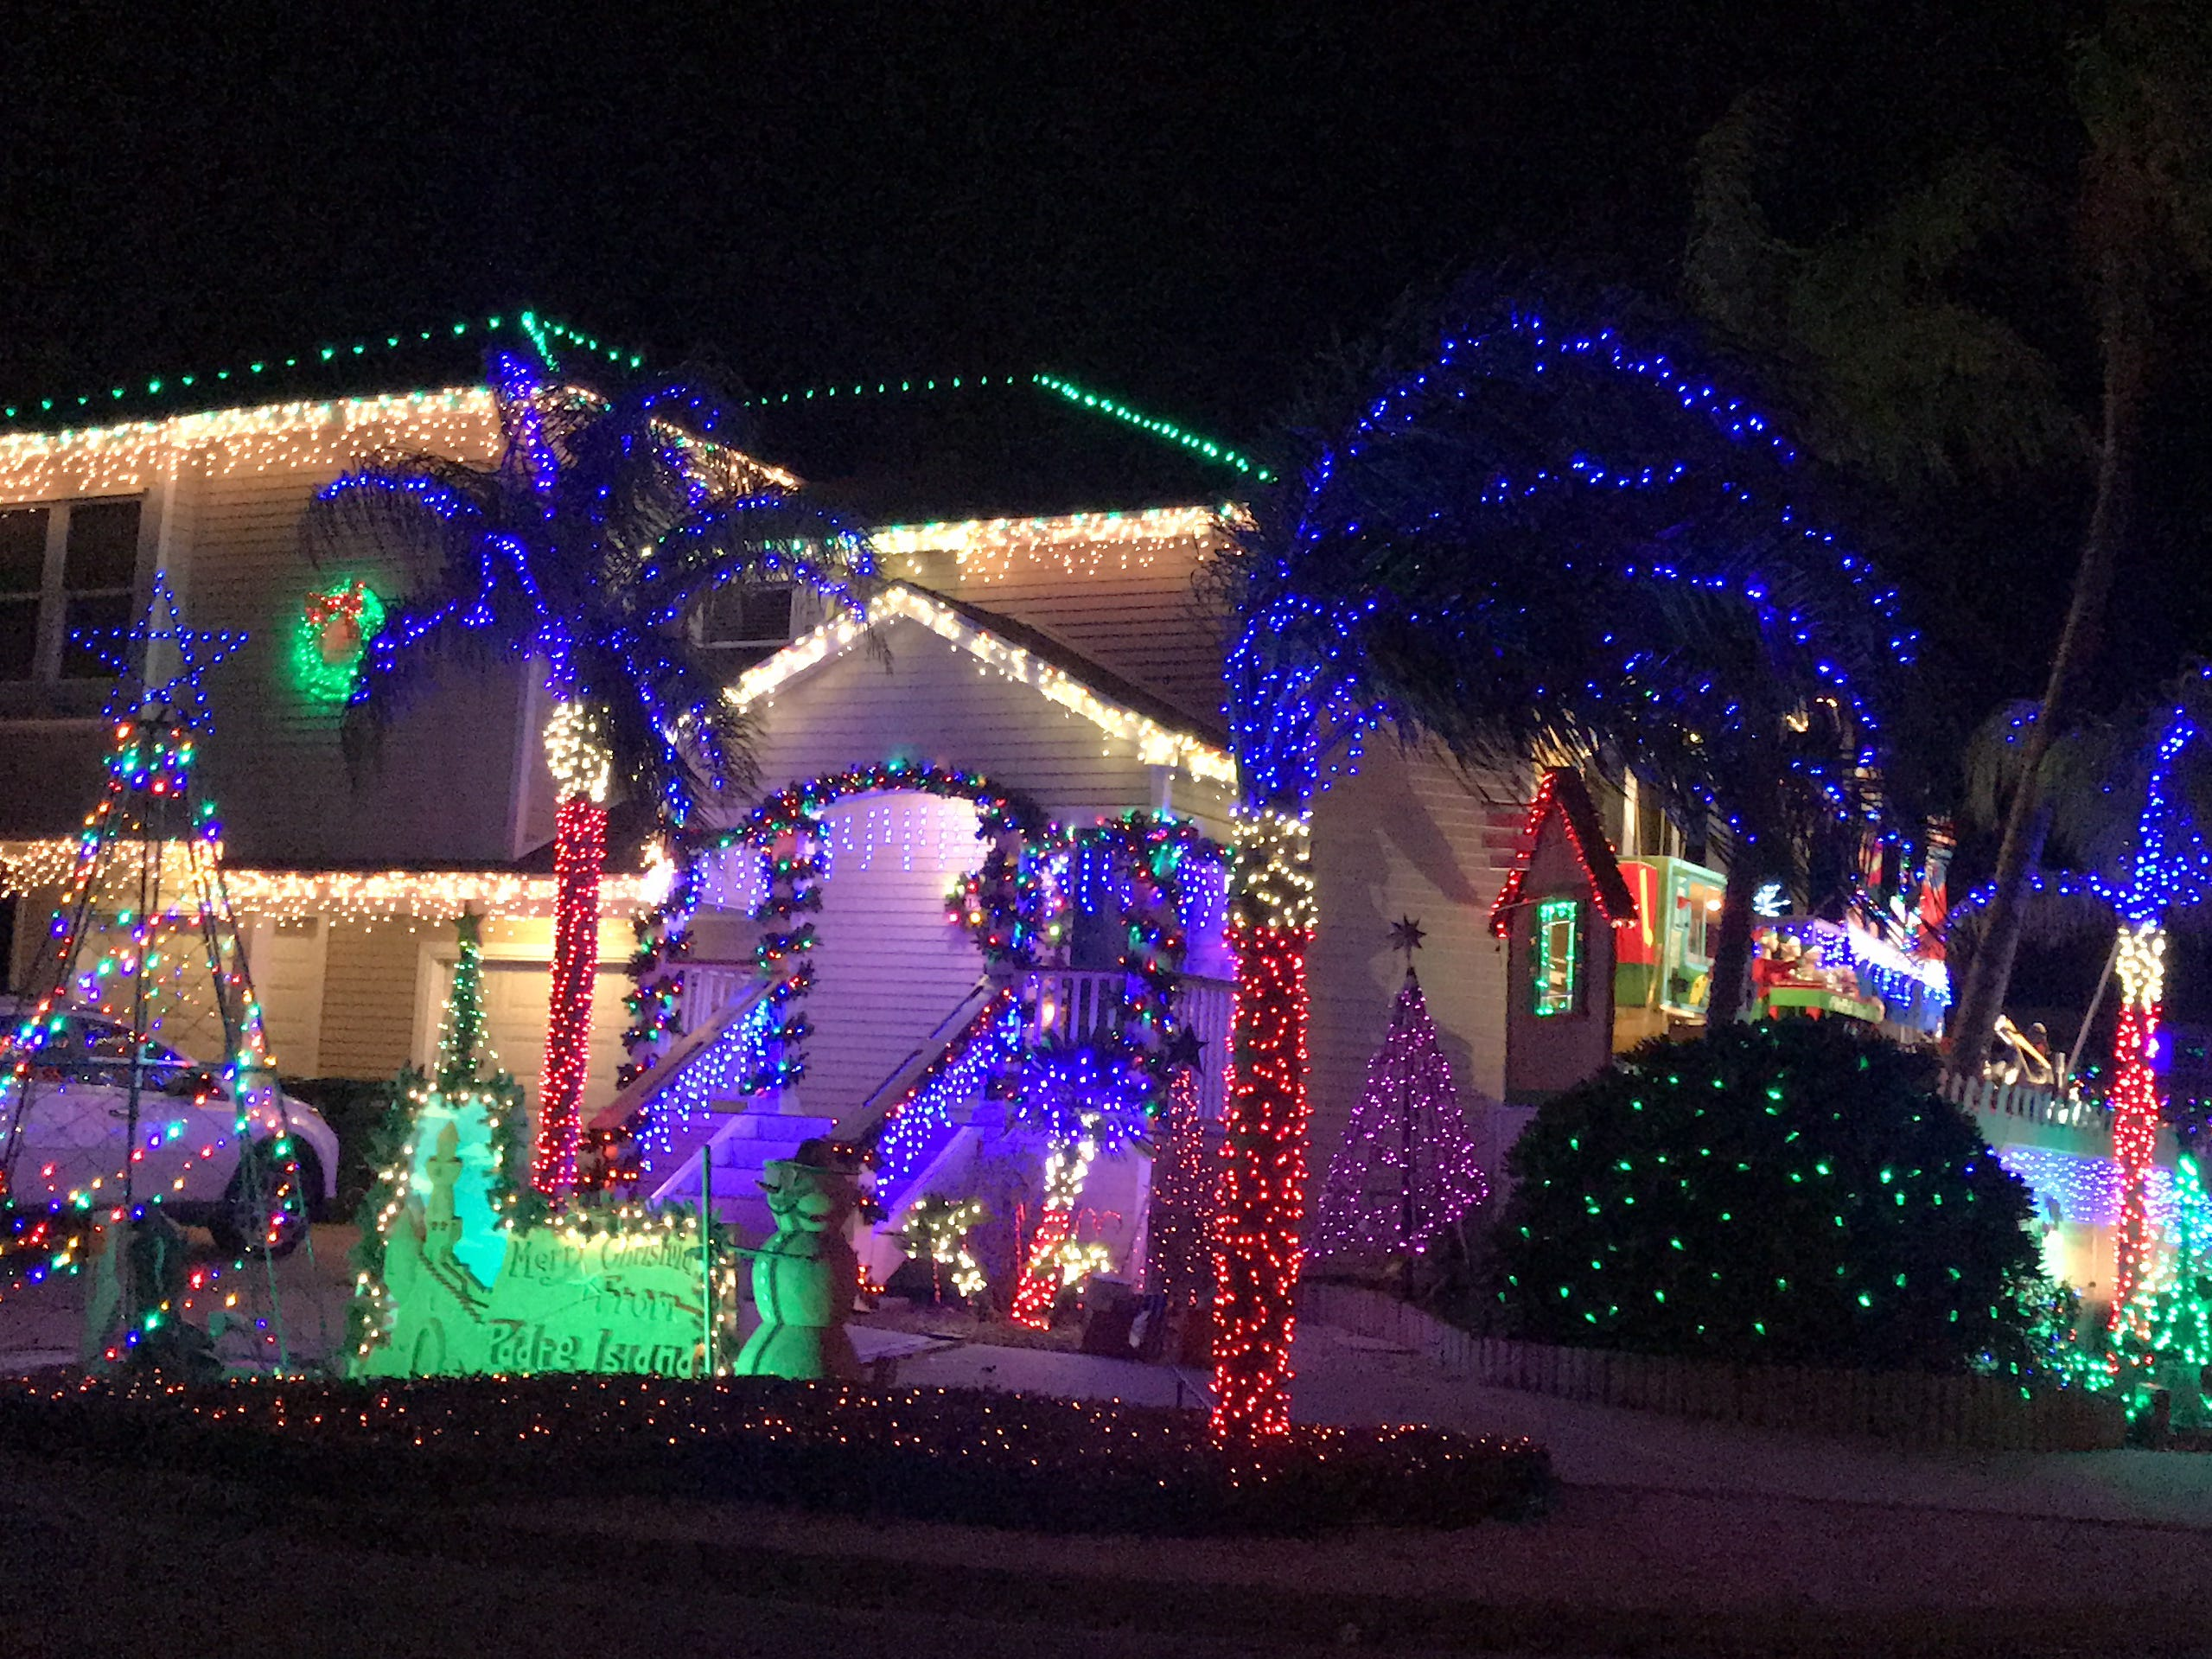 The Mazoch Family Christmas Display features pelicans, a Nativity scene and music on Padre Island.